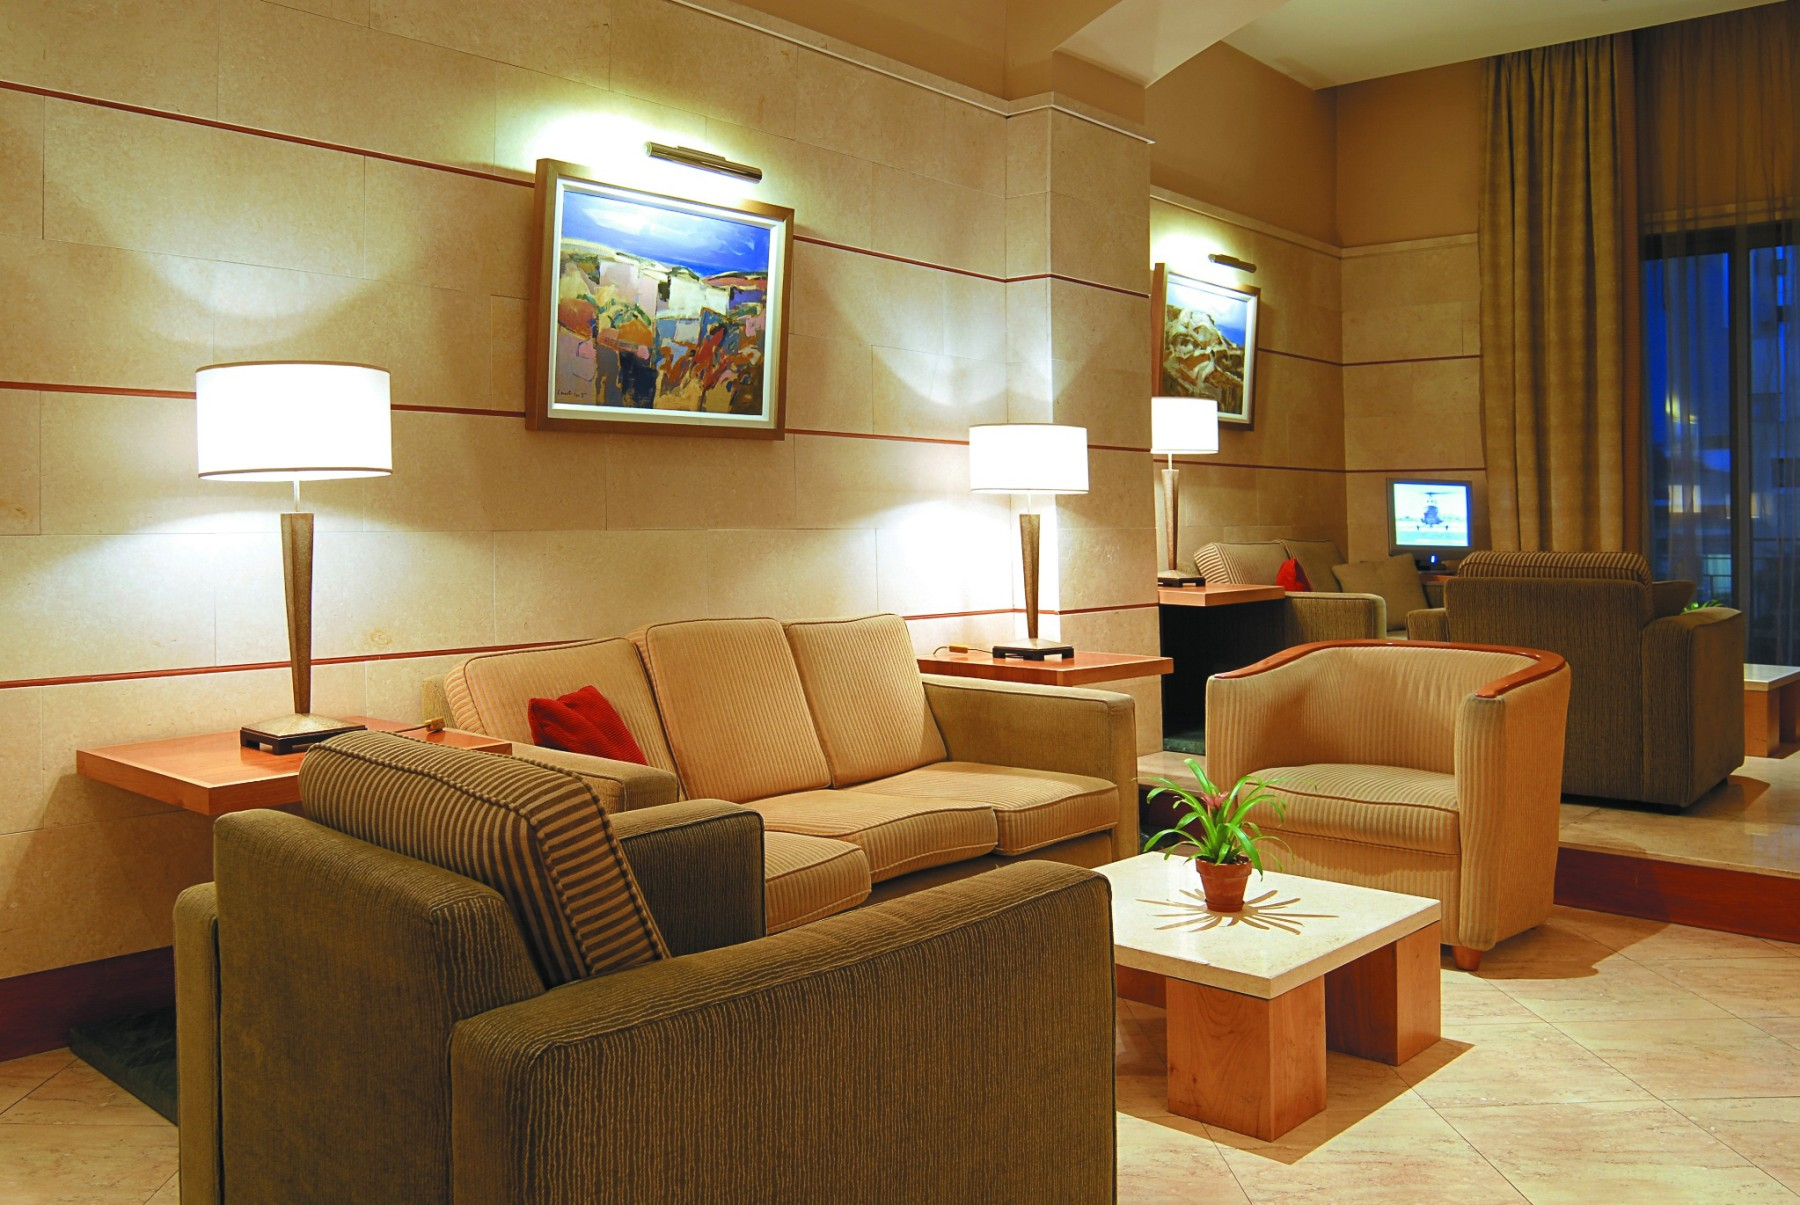 relax and enjoy the Wi-Fi throughout the hotel